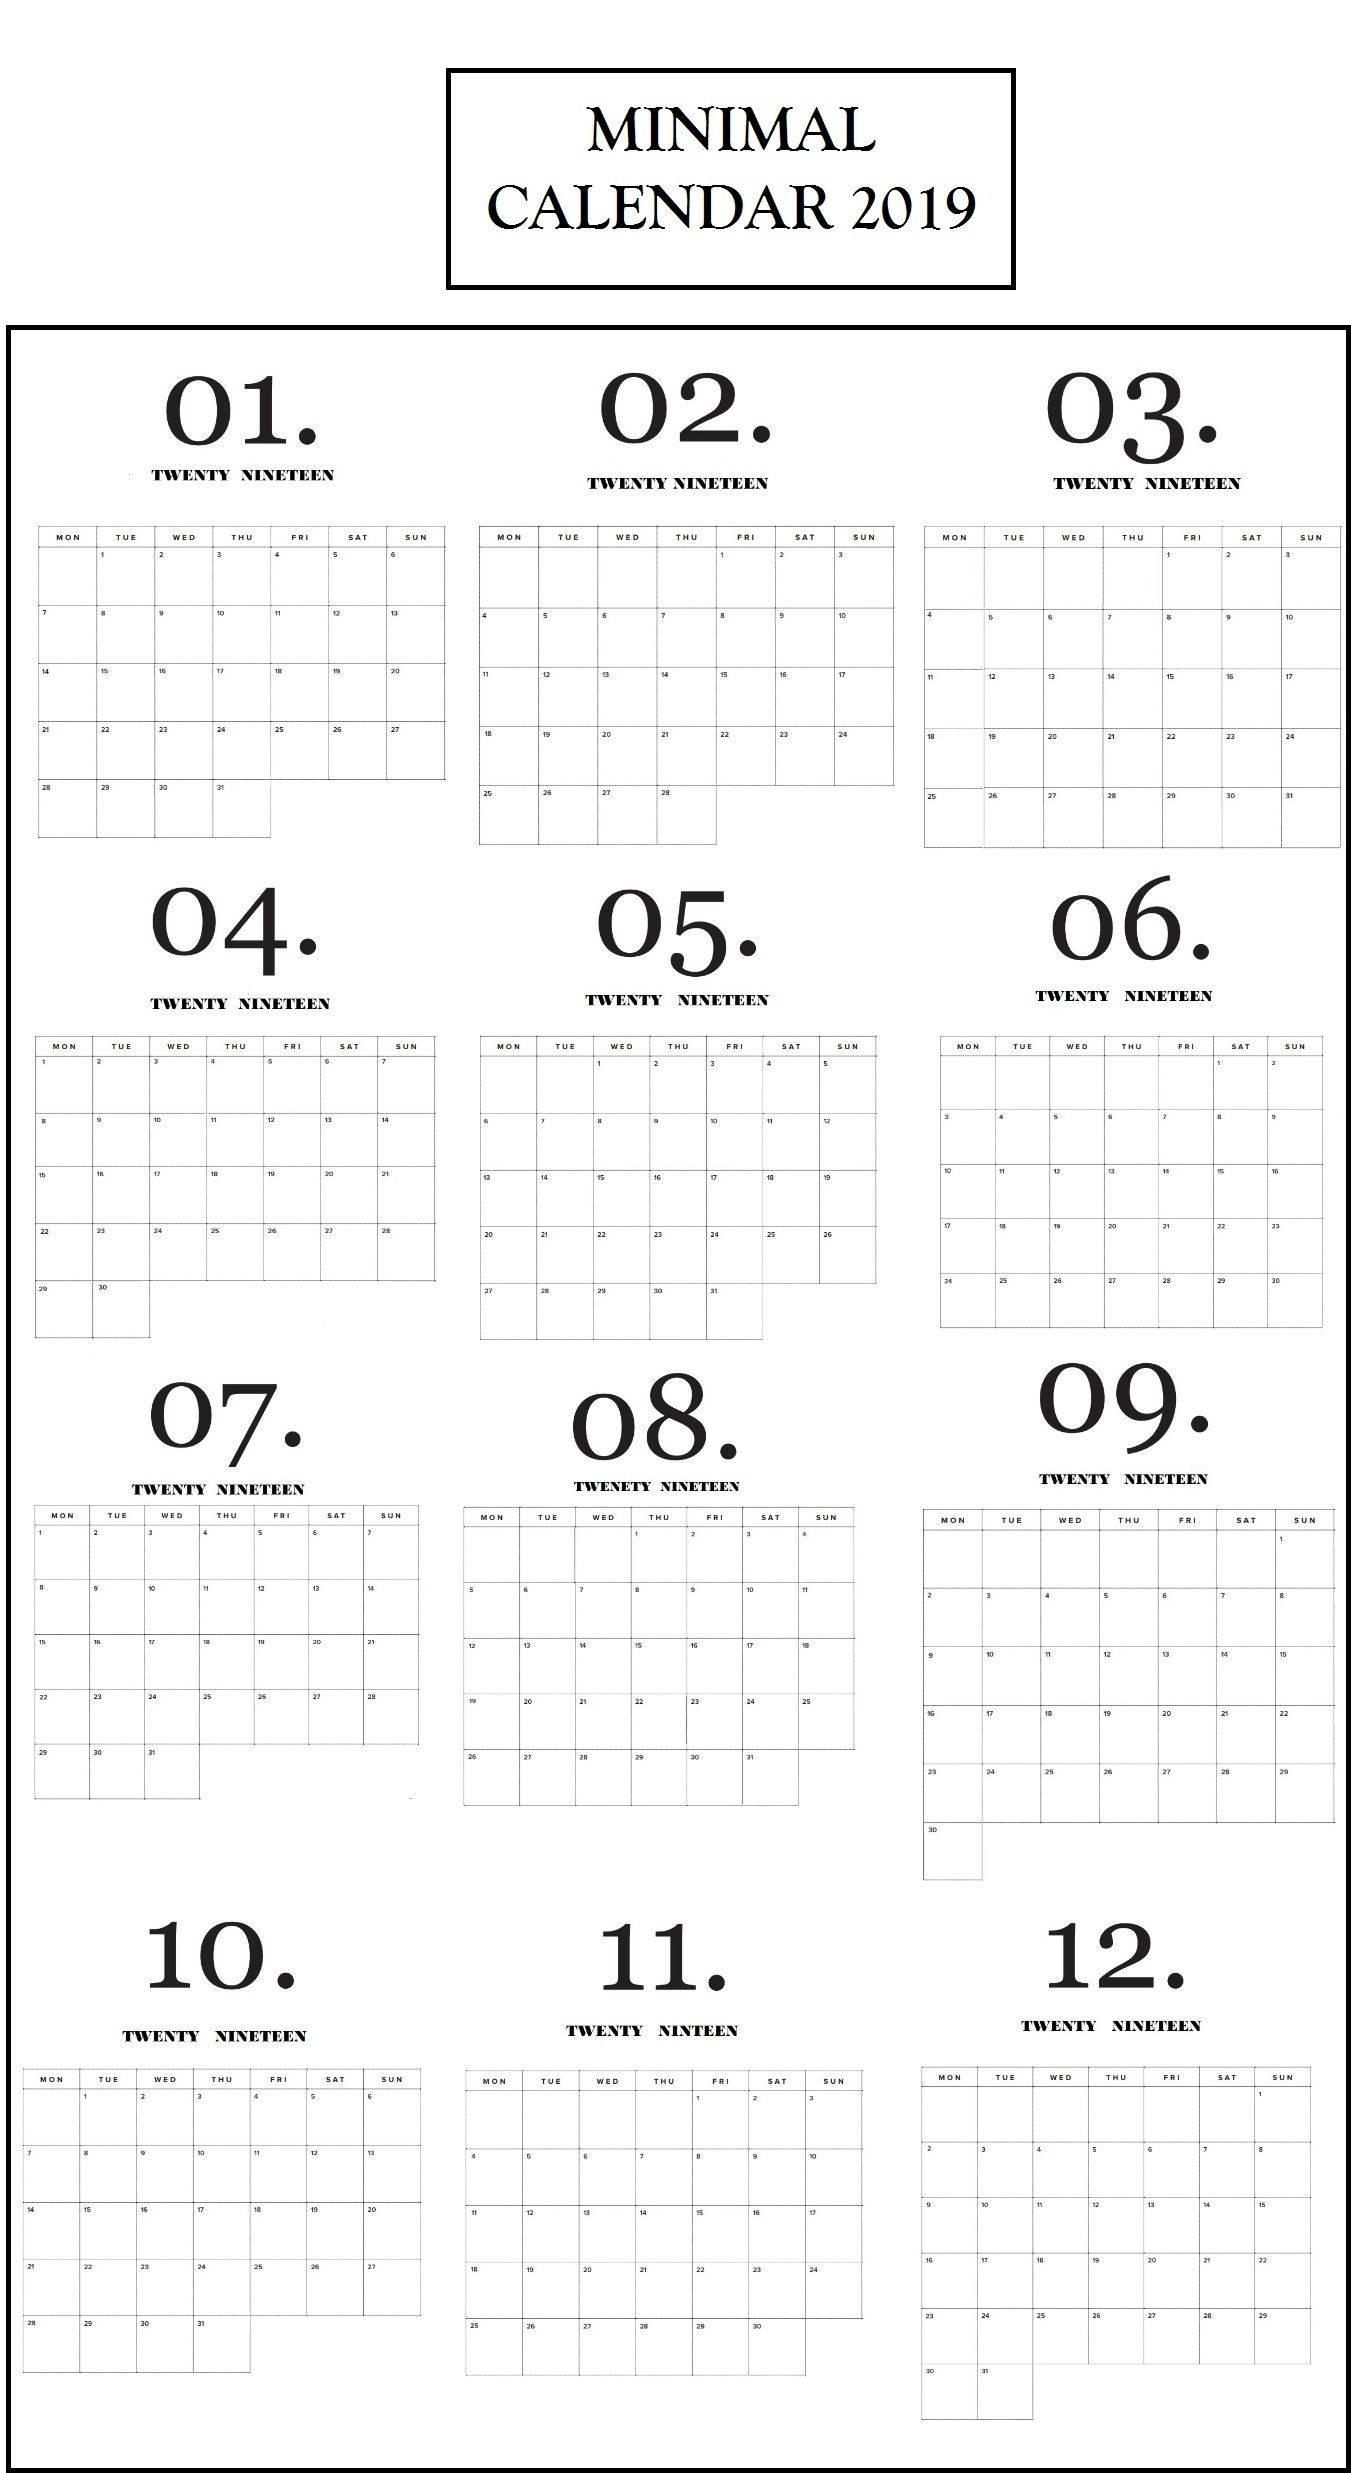 Modern Minimal 2019 Calendar | Idea | Calendar 2019 Printable intended for Year At A Glance Calendar Simple Design